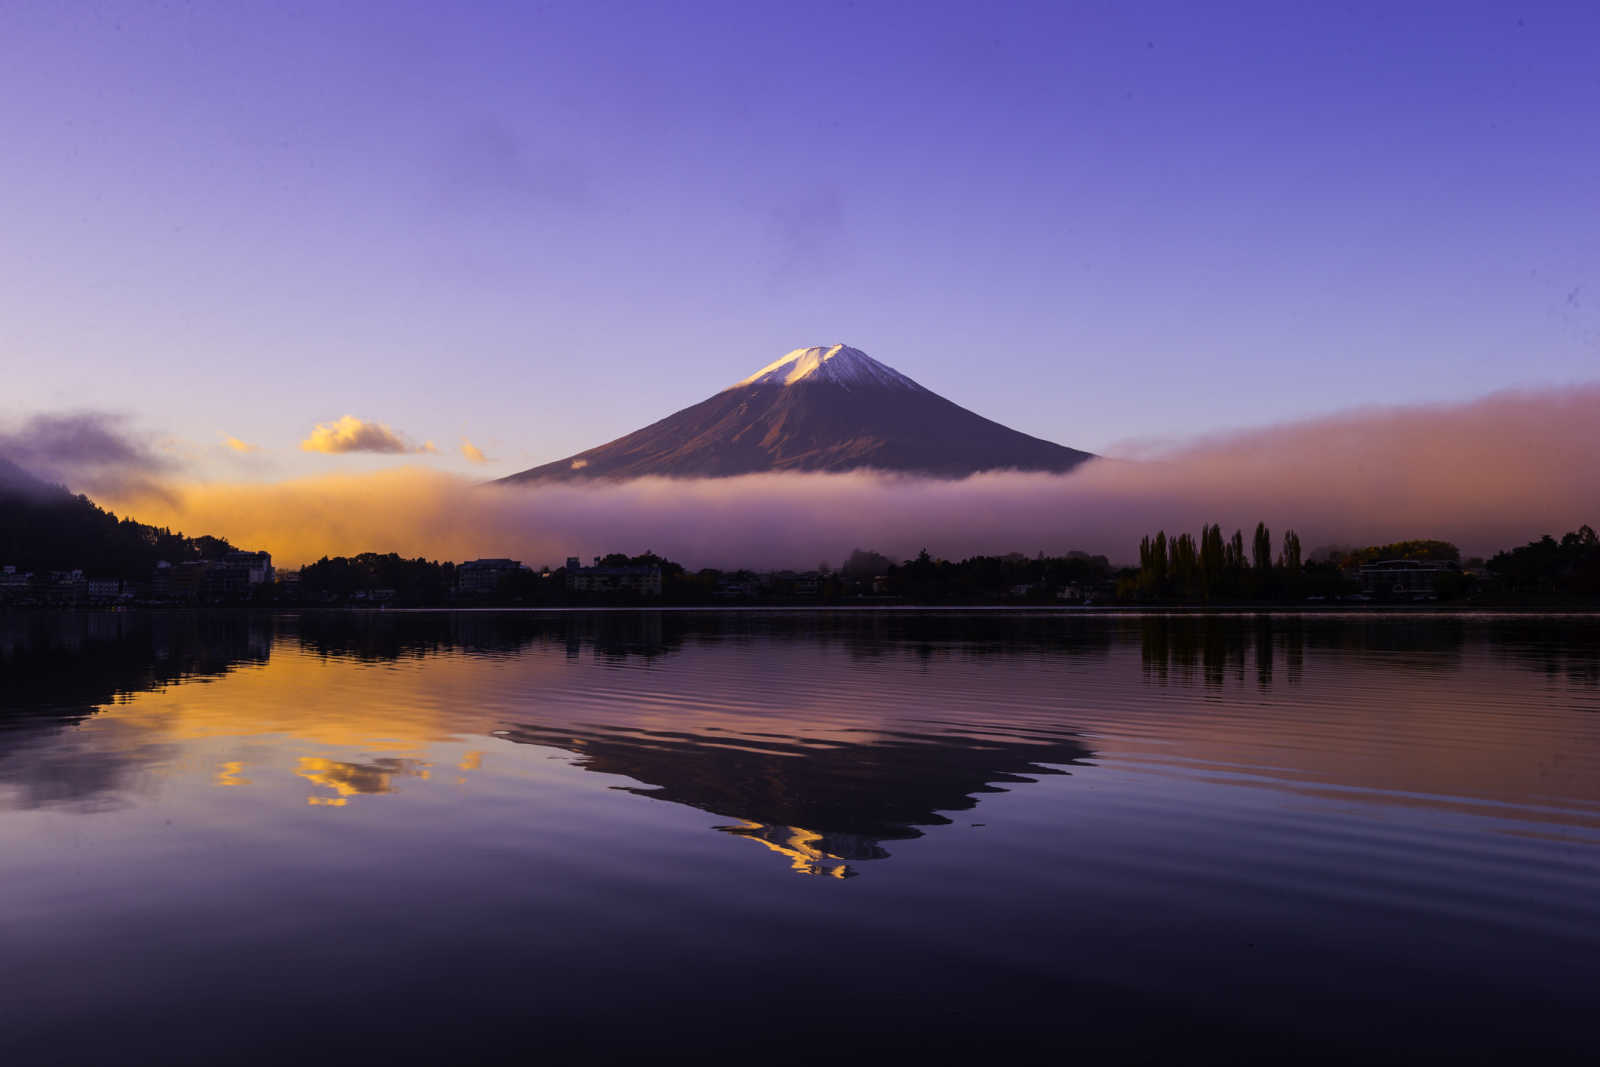 Visit the beautiful Mount Fuji on a Japan vacation